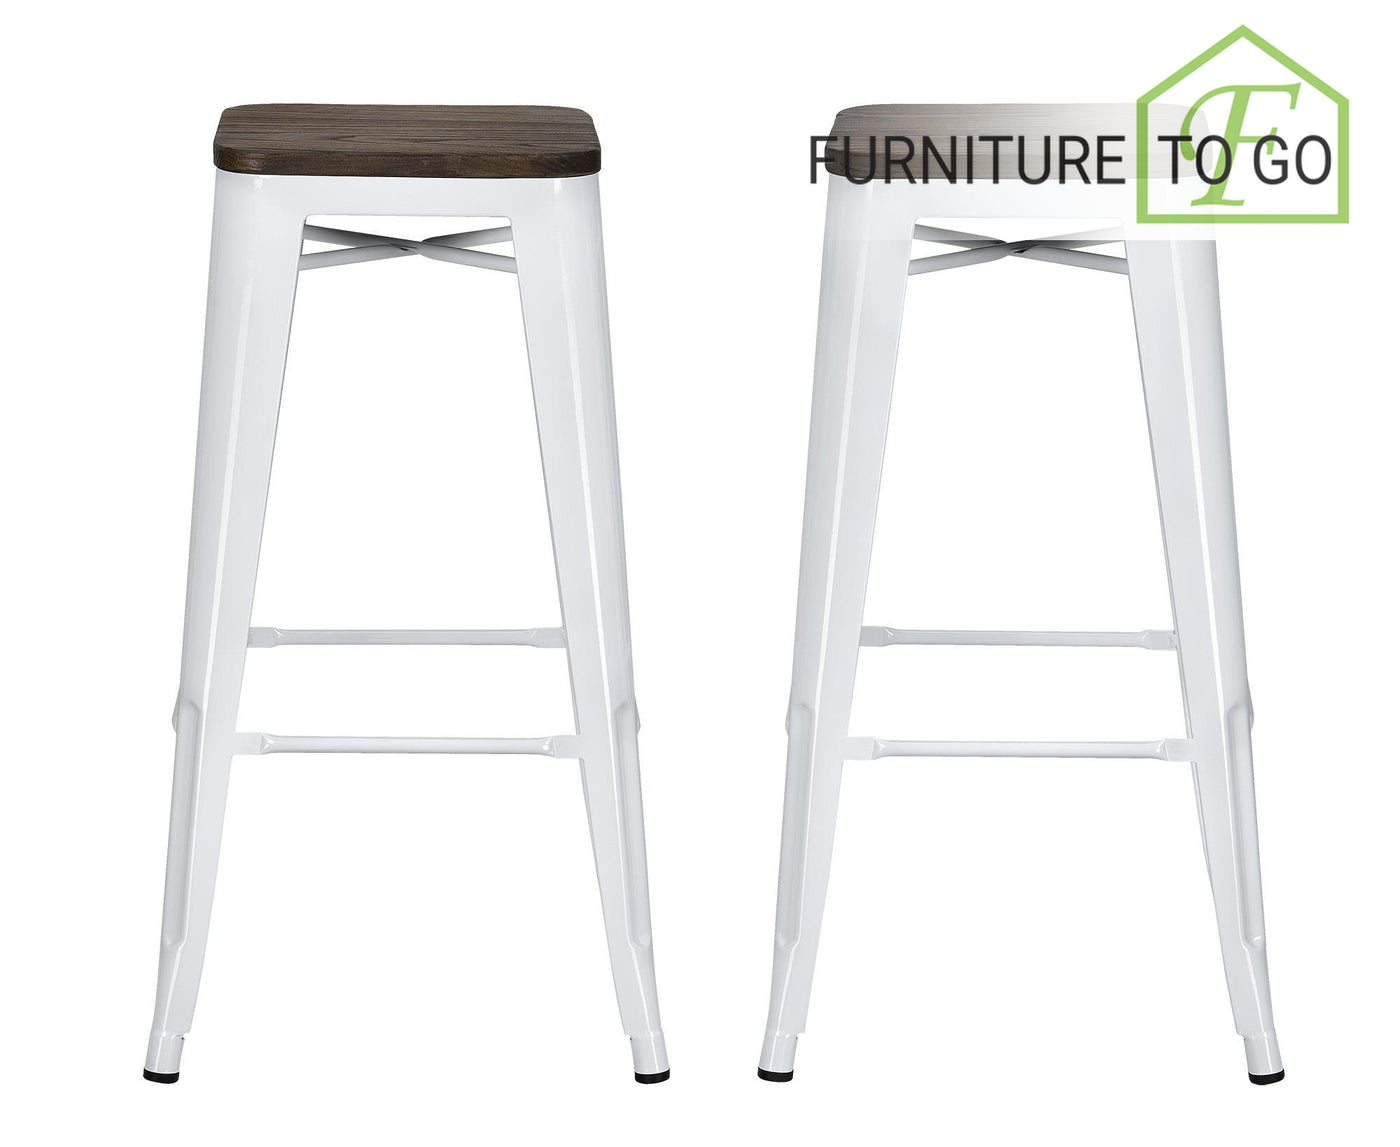 Incredible Clearance Furniture In Dallas 80 00 White Industrial Modern Backless Bar Stools 30 Inches 282 Pack 29 Gmtry Best Dining Table And Chair Ideas Images Gmtryco